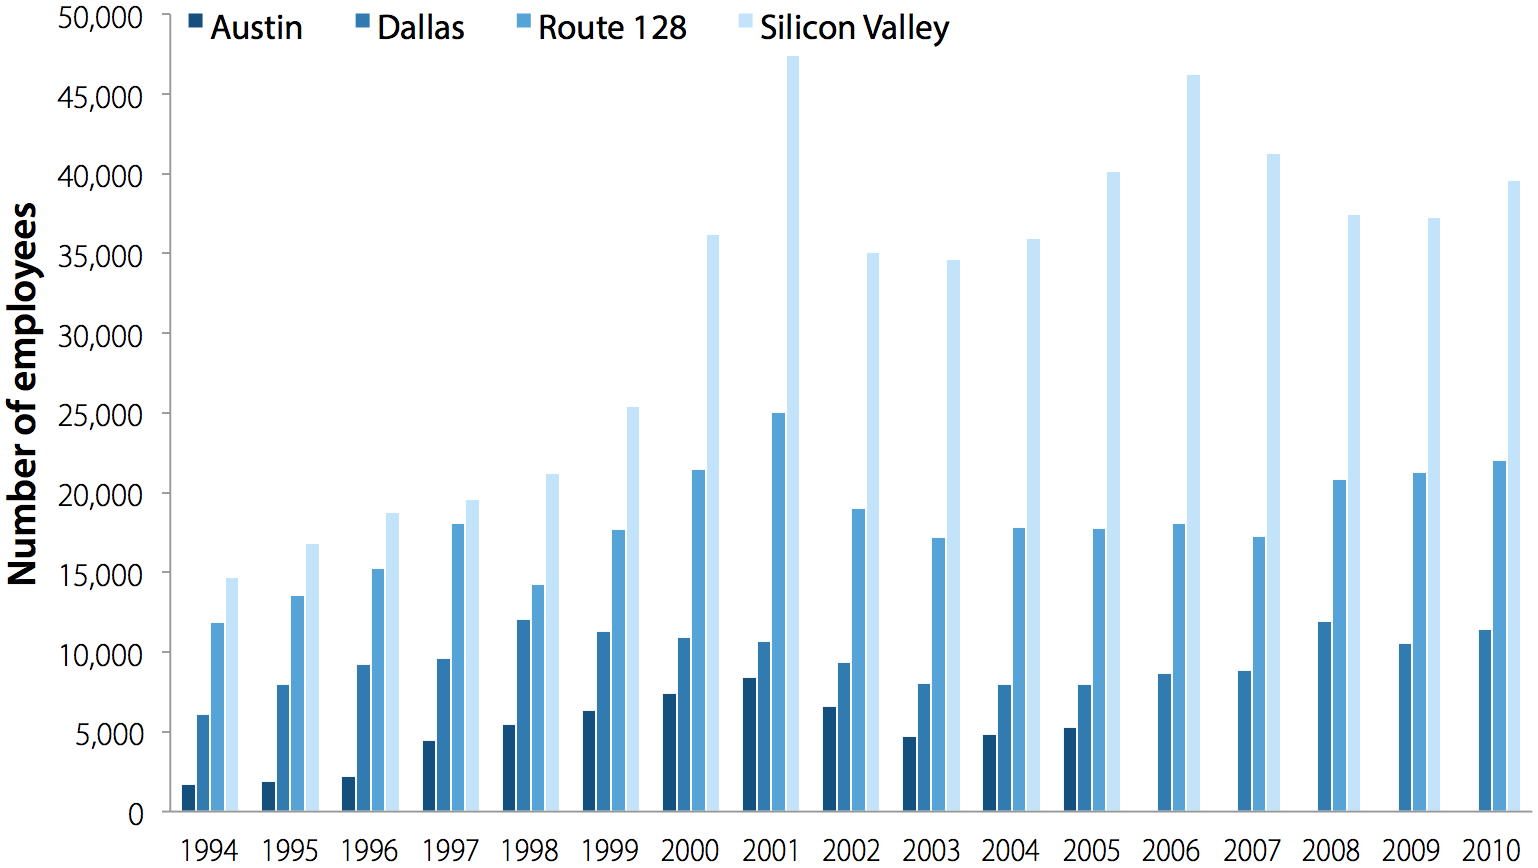 Full-time computer programming employment in Austin, Dallas, Route 128 corridor, and Silicon Valley, 1994–2010